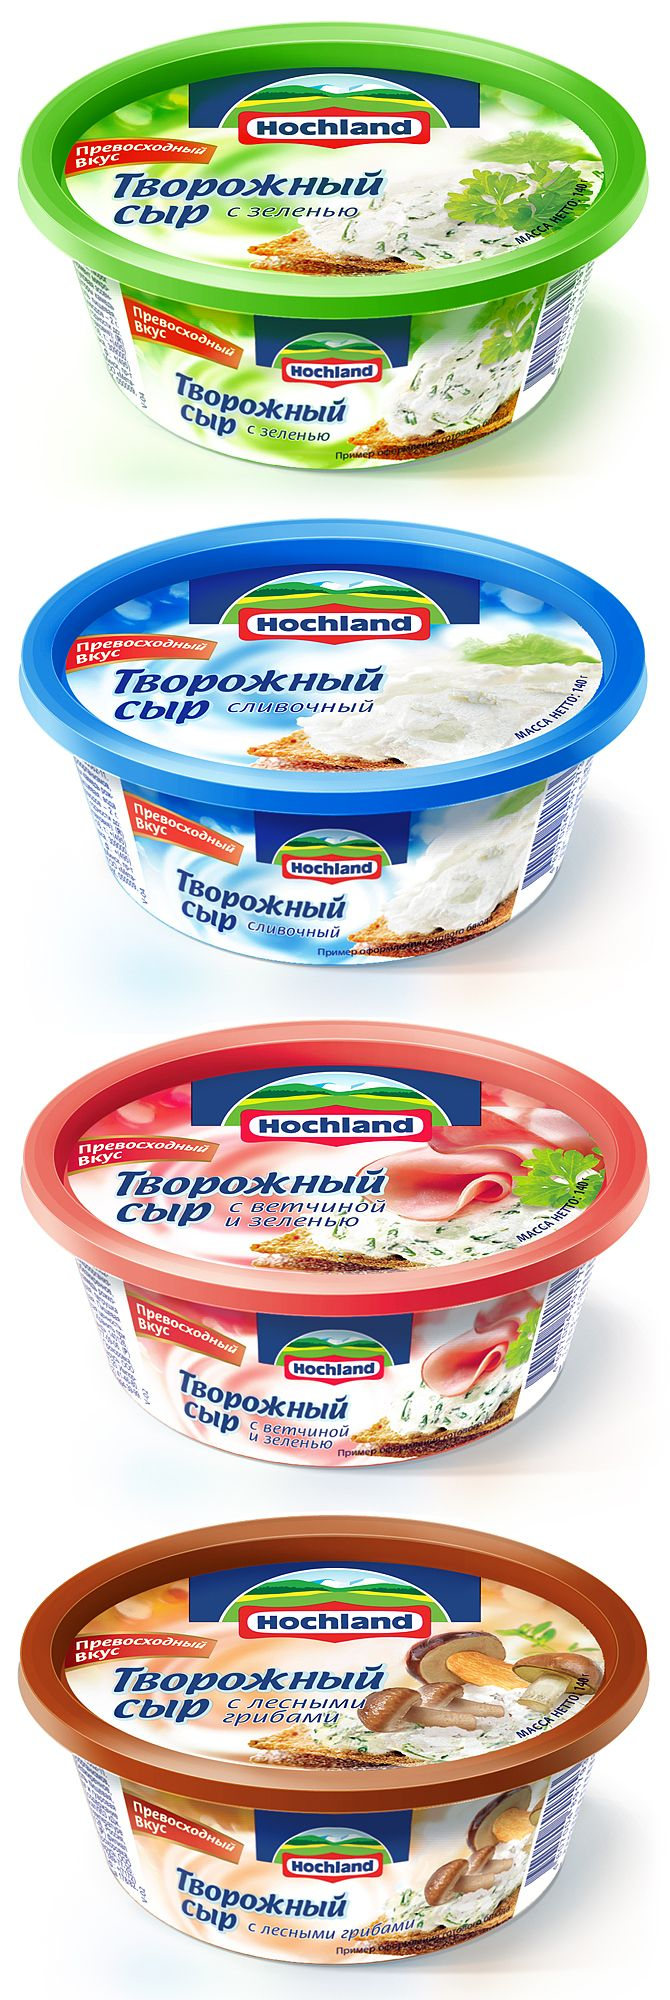 """Hochland company launched new range of products cream cheese – classic and flavored with herbs. We developed package design for the new SKUs. In general design corresponds to the Hochland """"family"""" food products. The design is filled with a delicate feeling of lightness, airiness and freshness. The closeups of the cream cheese itself emphasize it's soft taste. Looks yummy as always! http://www.getbrand.com/blog/design-for-hoc…d-cream-cheese/"""